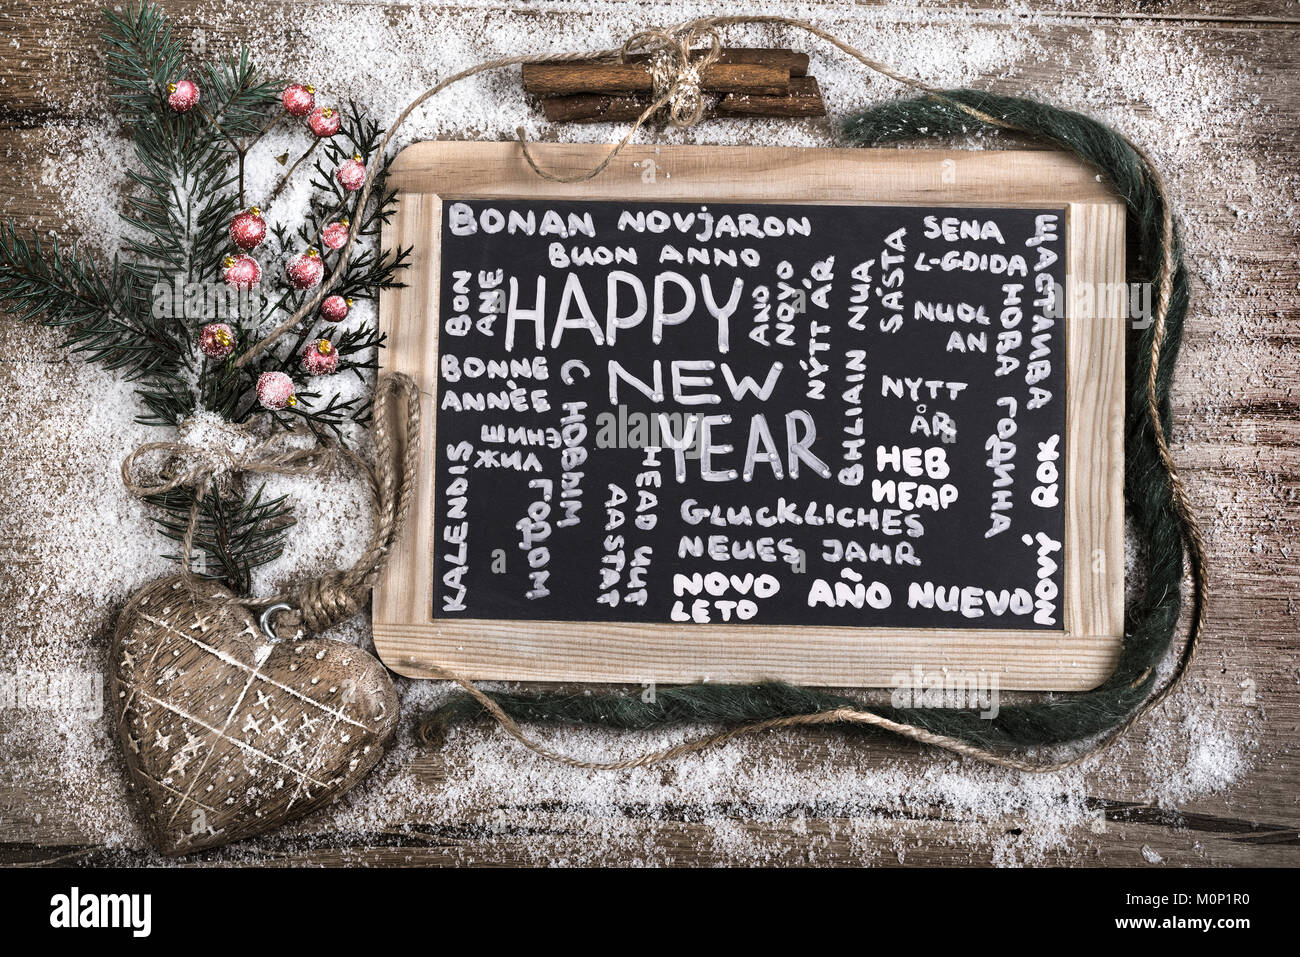 Black charcoal board with caption 'Happy New Year' in many languages among winter decorations - Stock Image